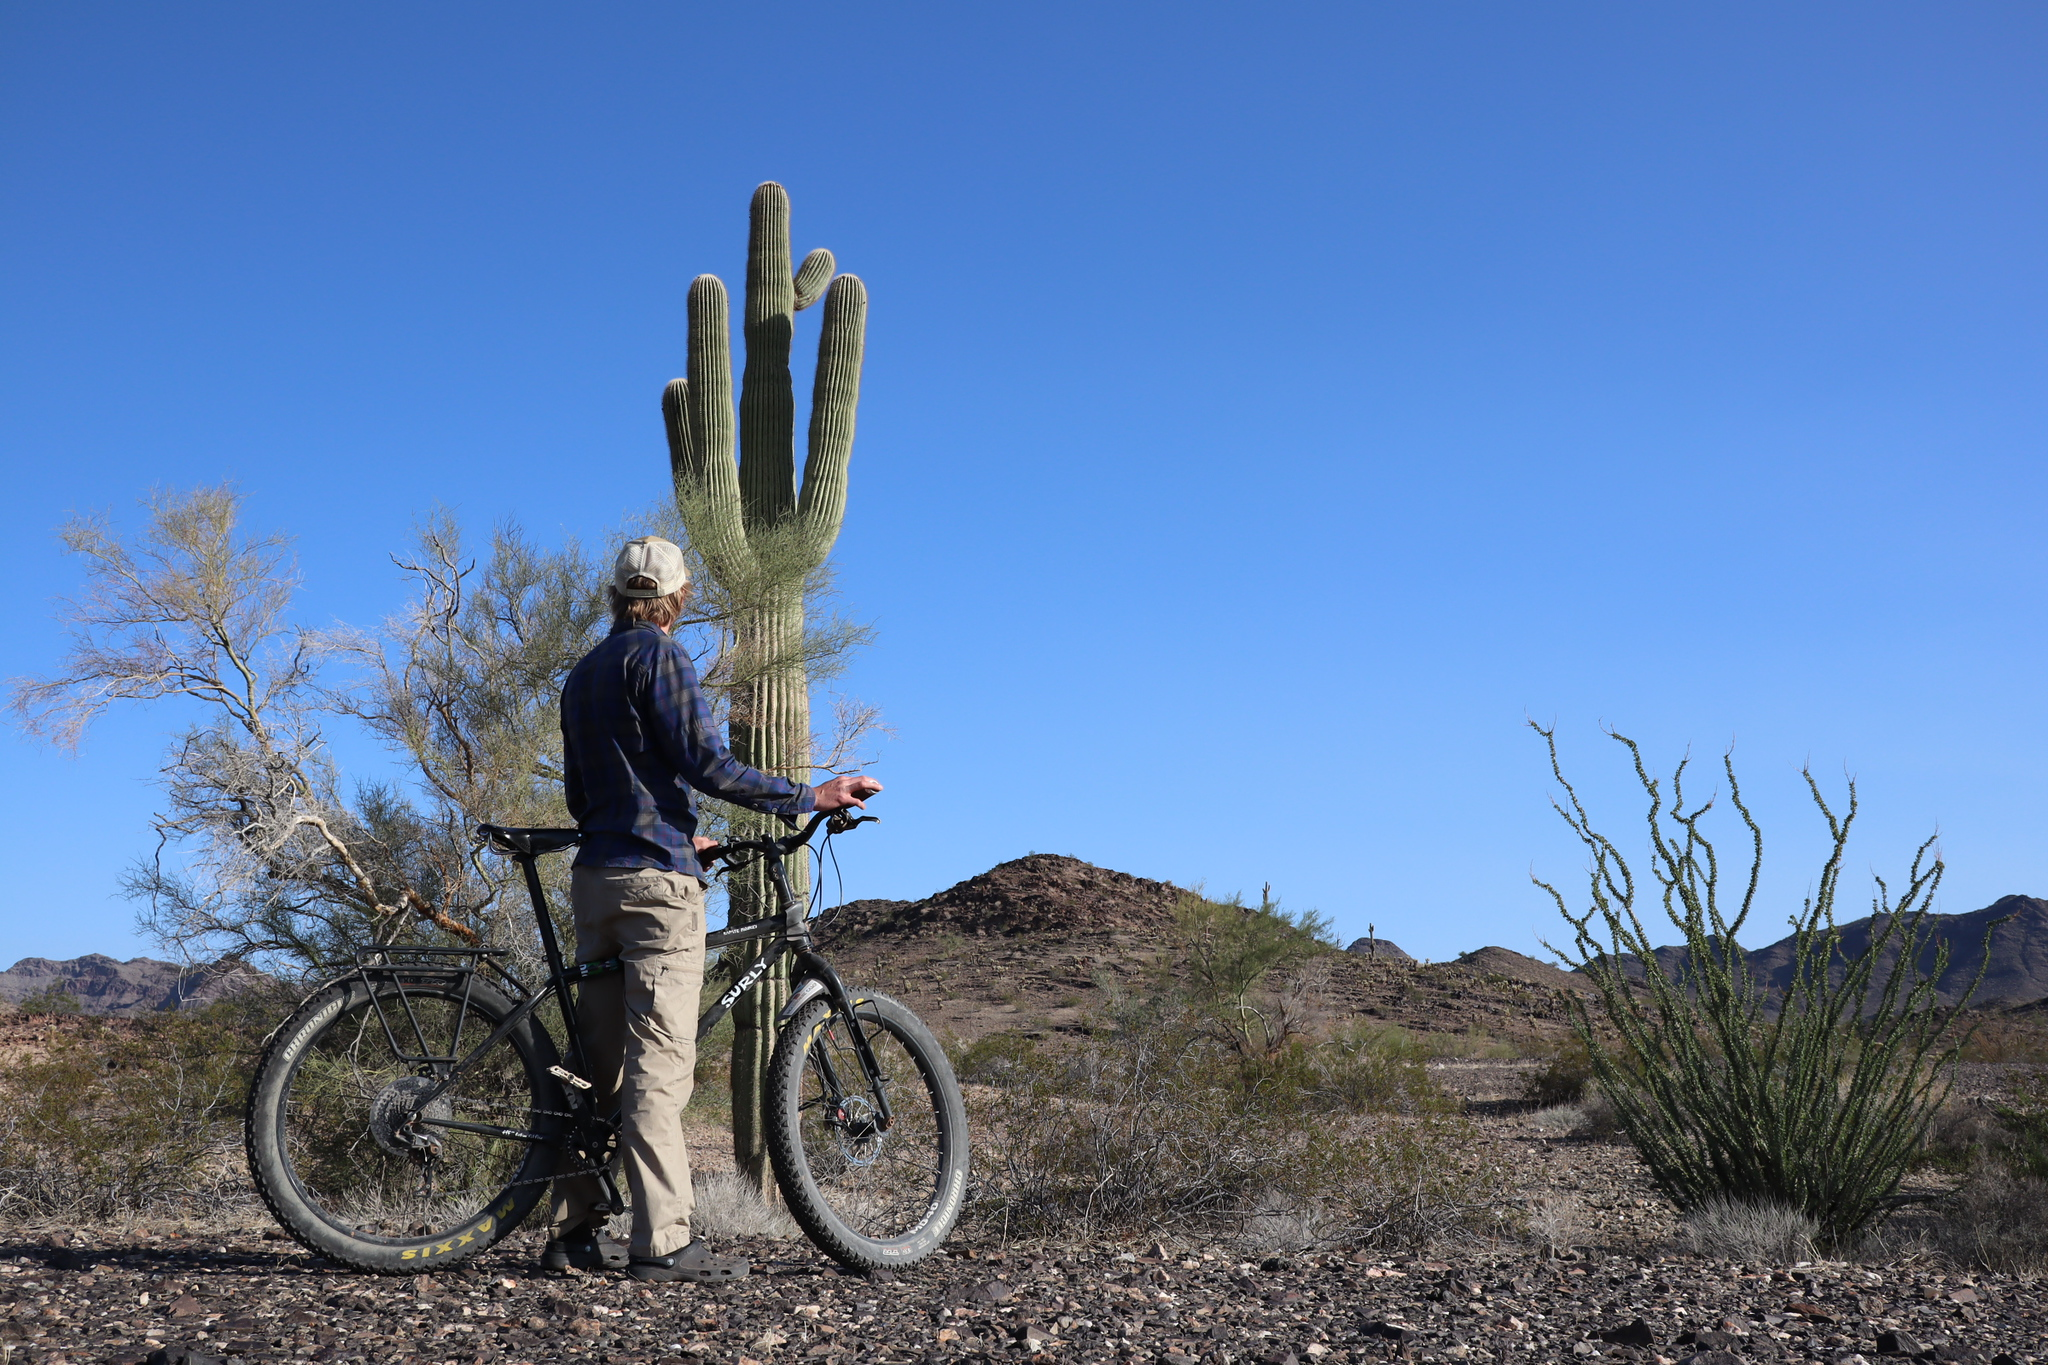 Adam looking at a saguaro